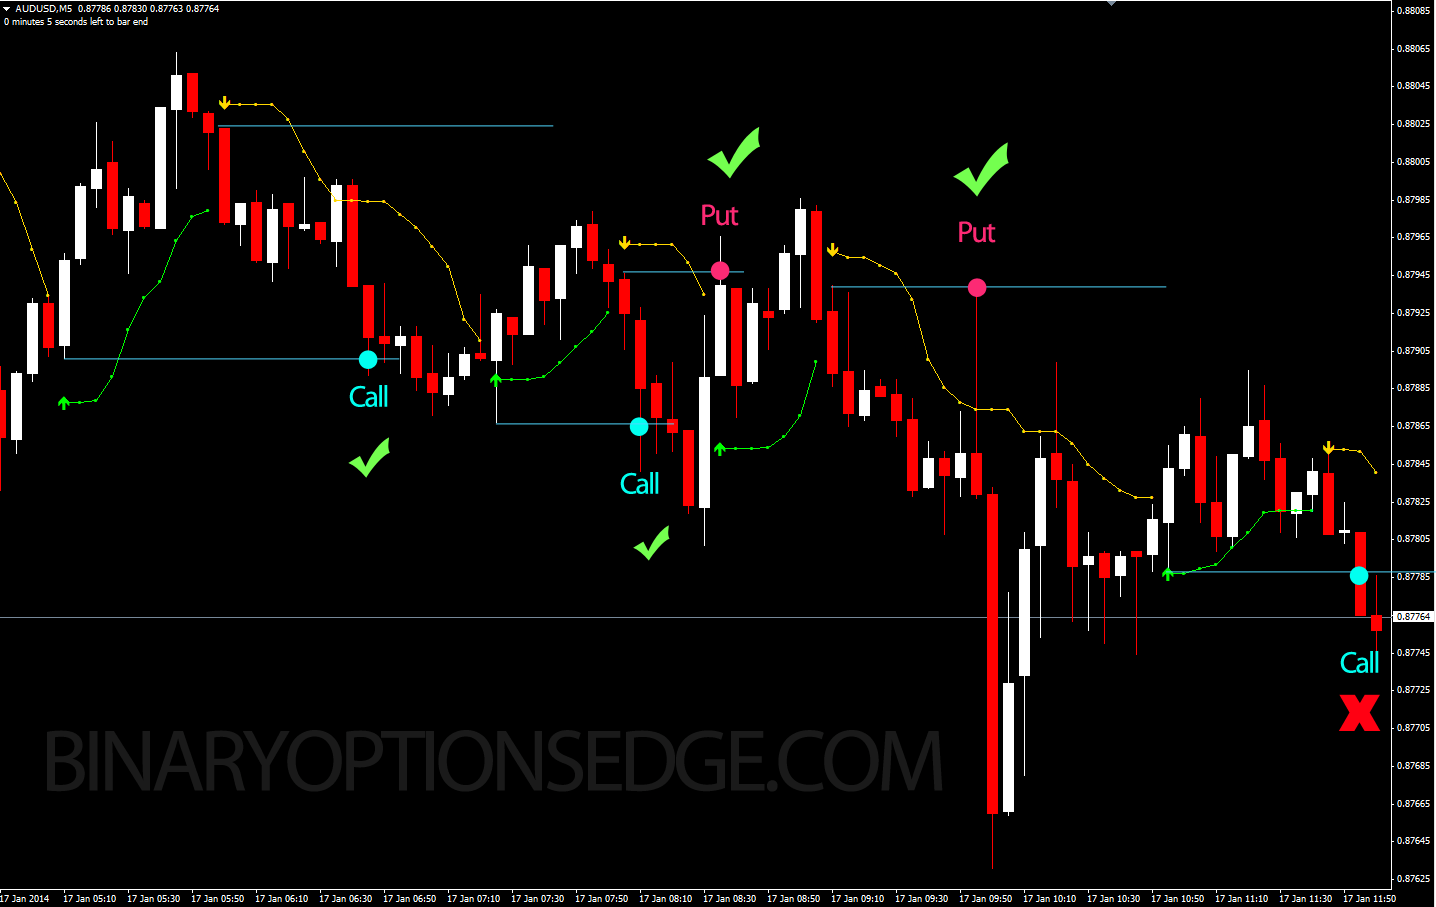 Pz binary options indicator